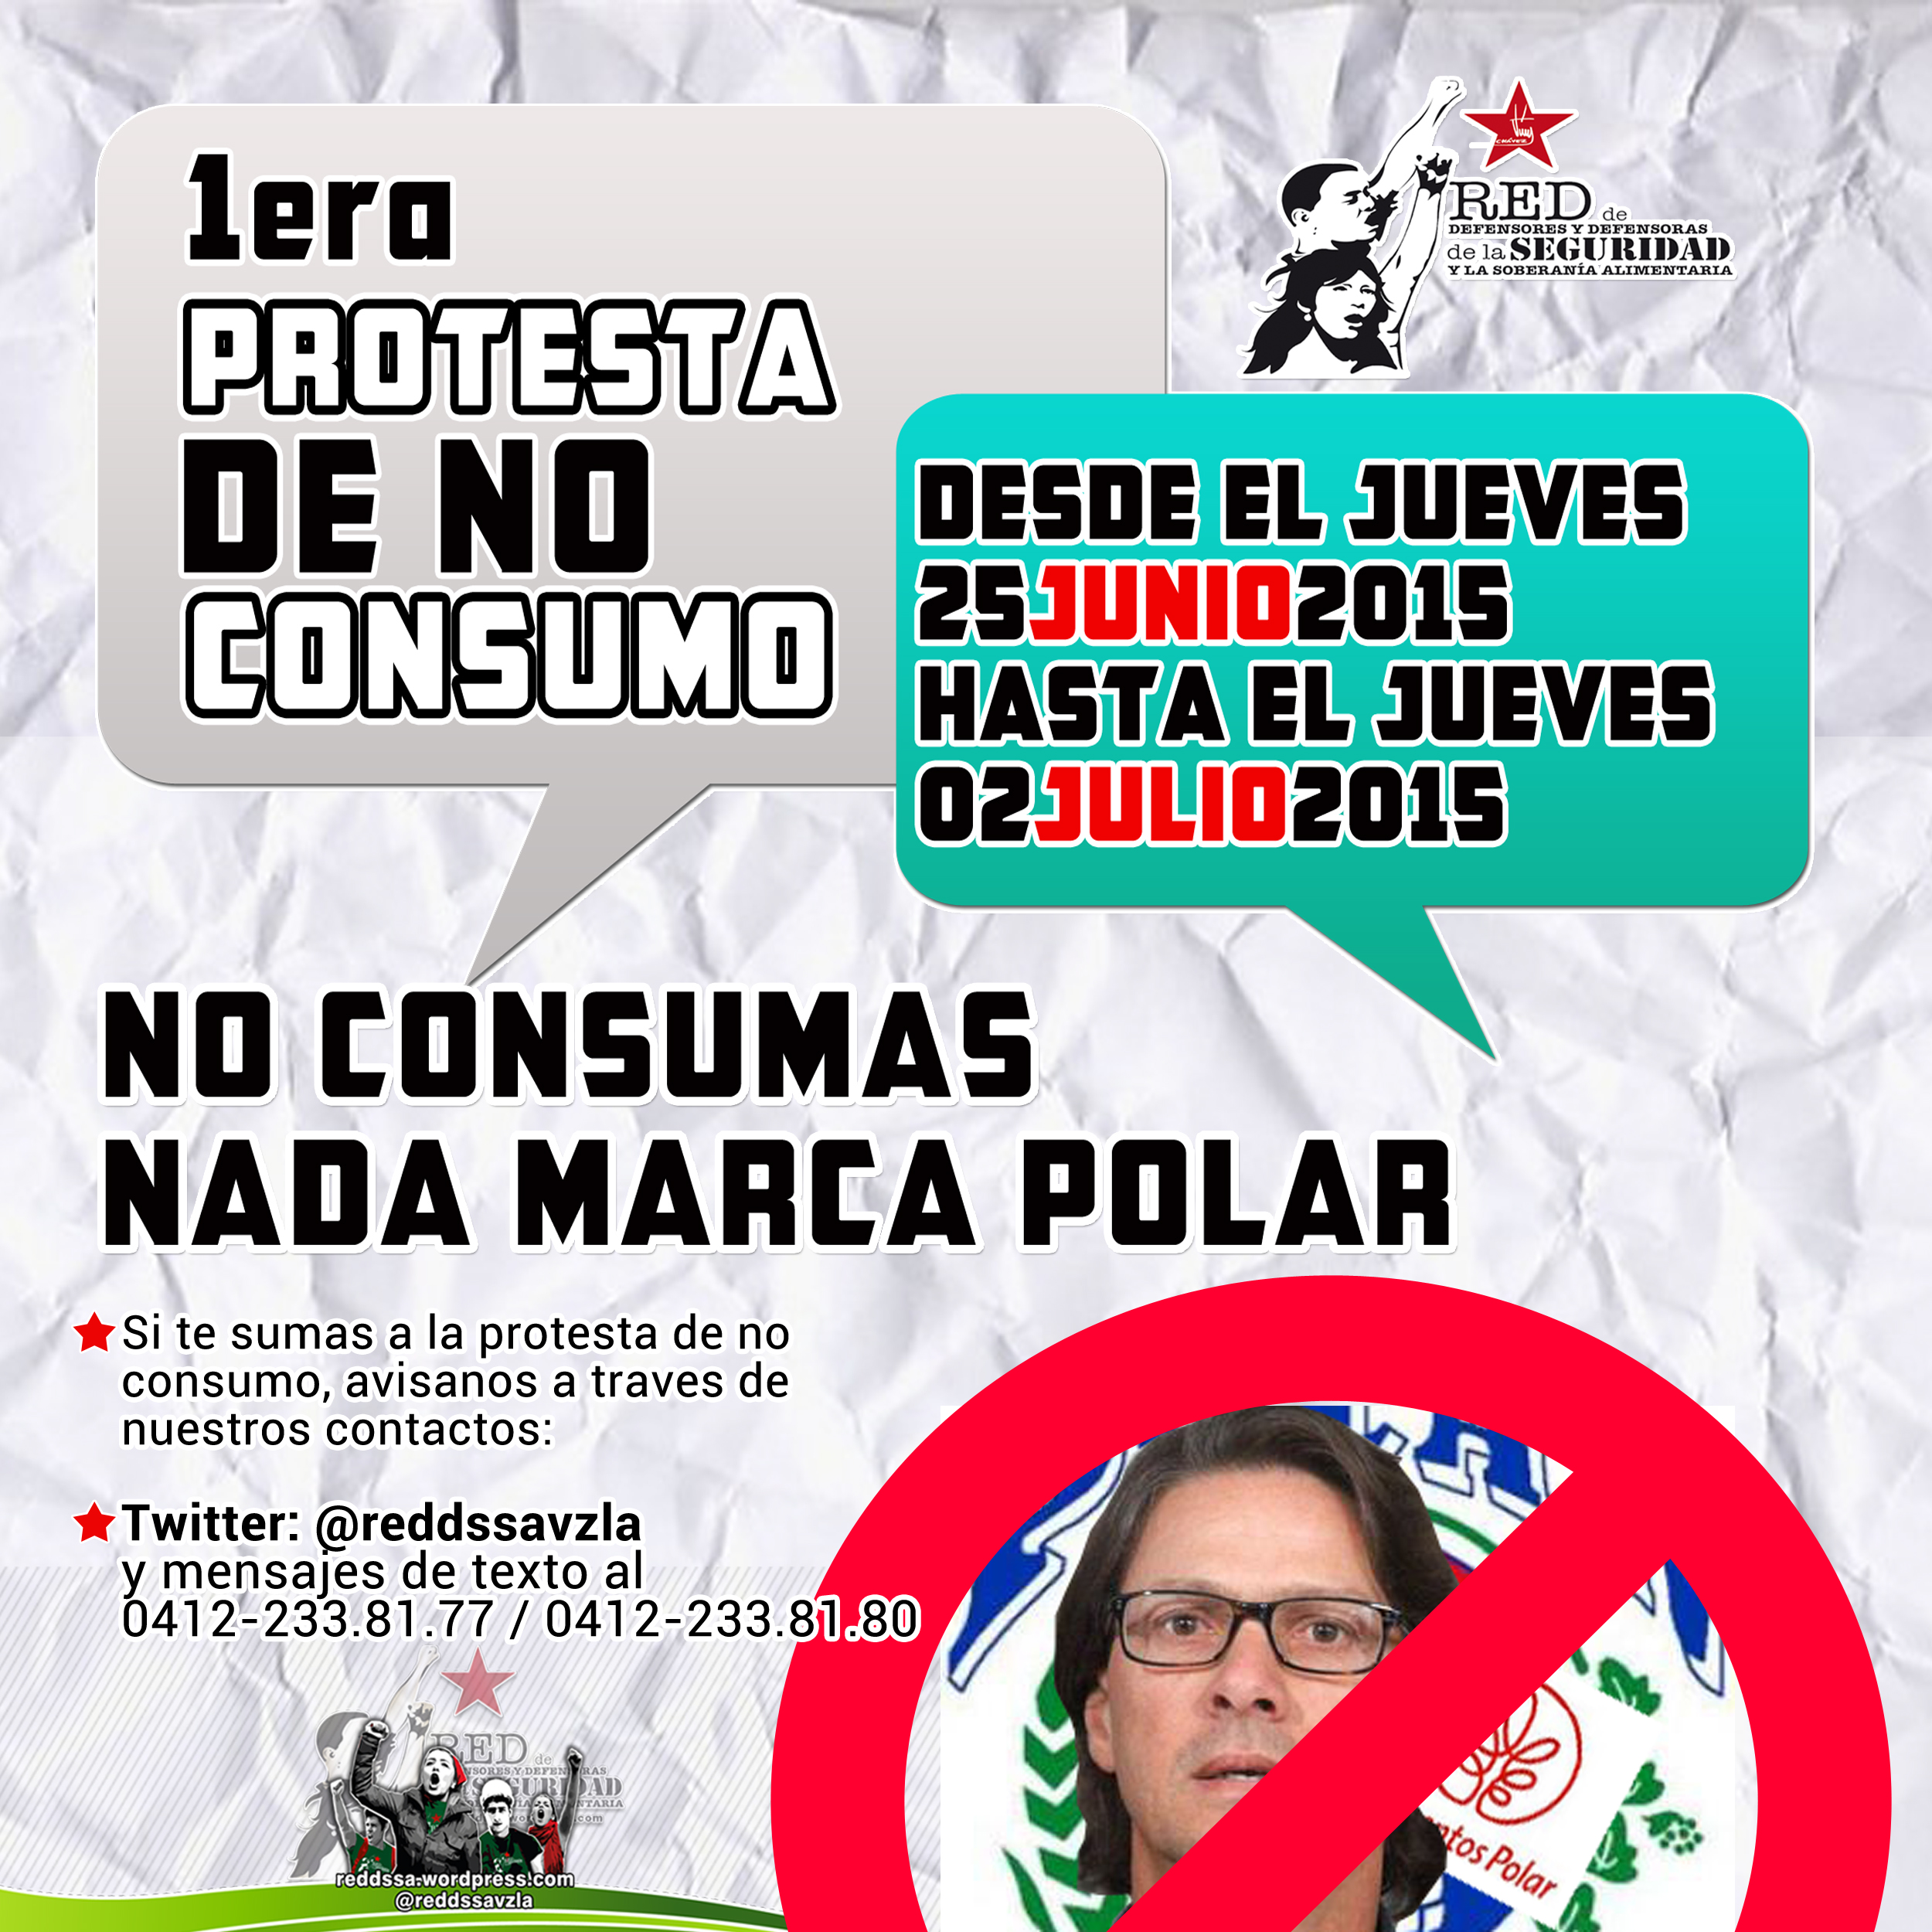 1era Protesta de NO Consumo de Productos Polar